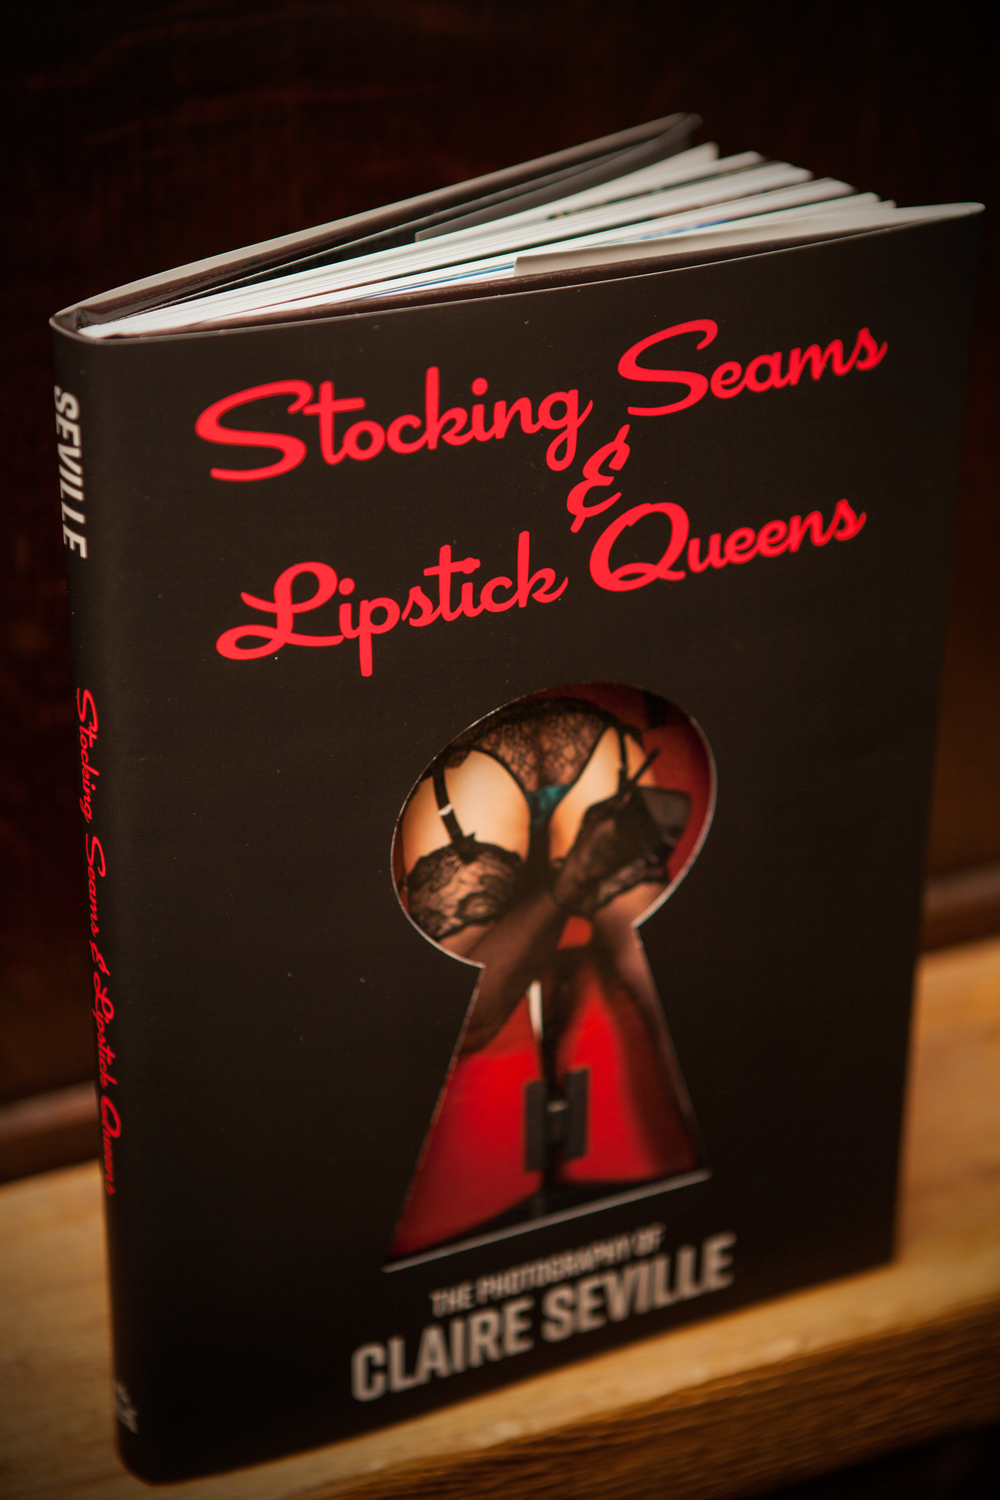 UK ONLY Stocking Seams & Lipstick Queens by Claire Seville